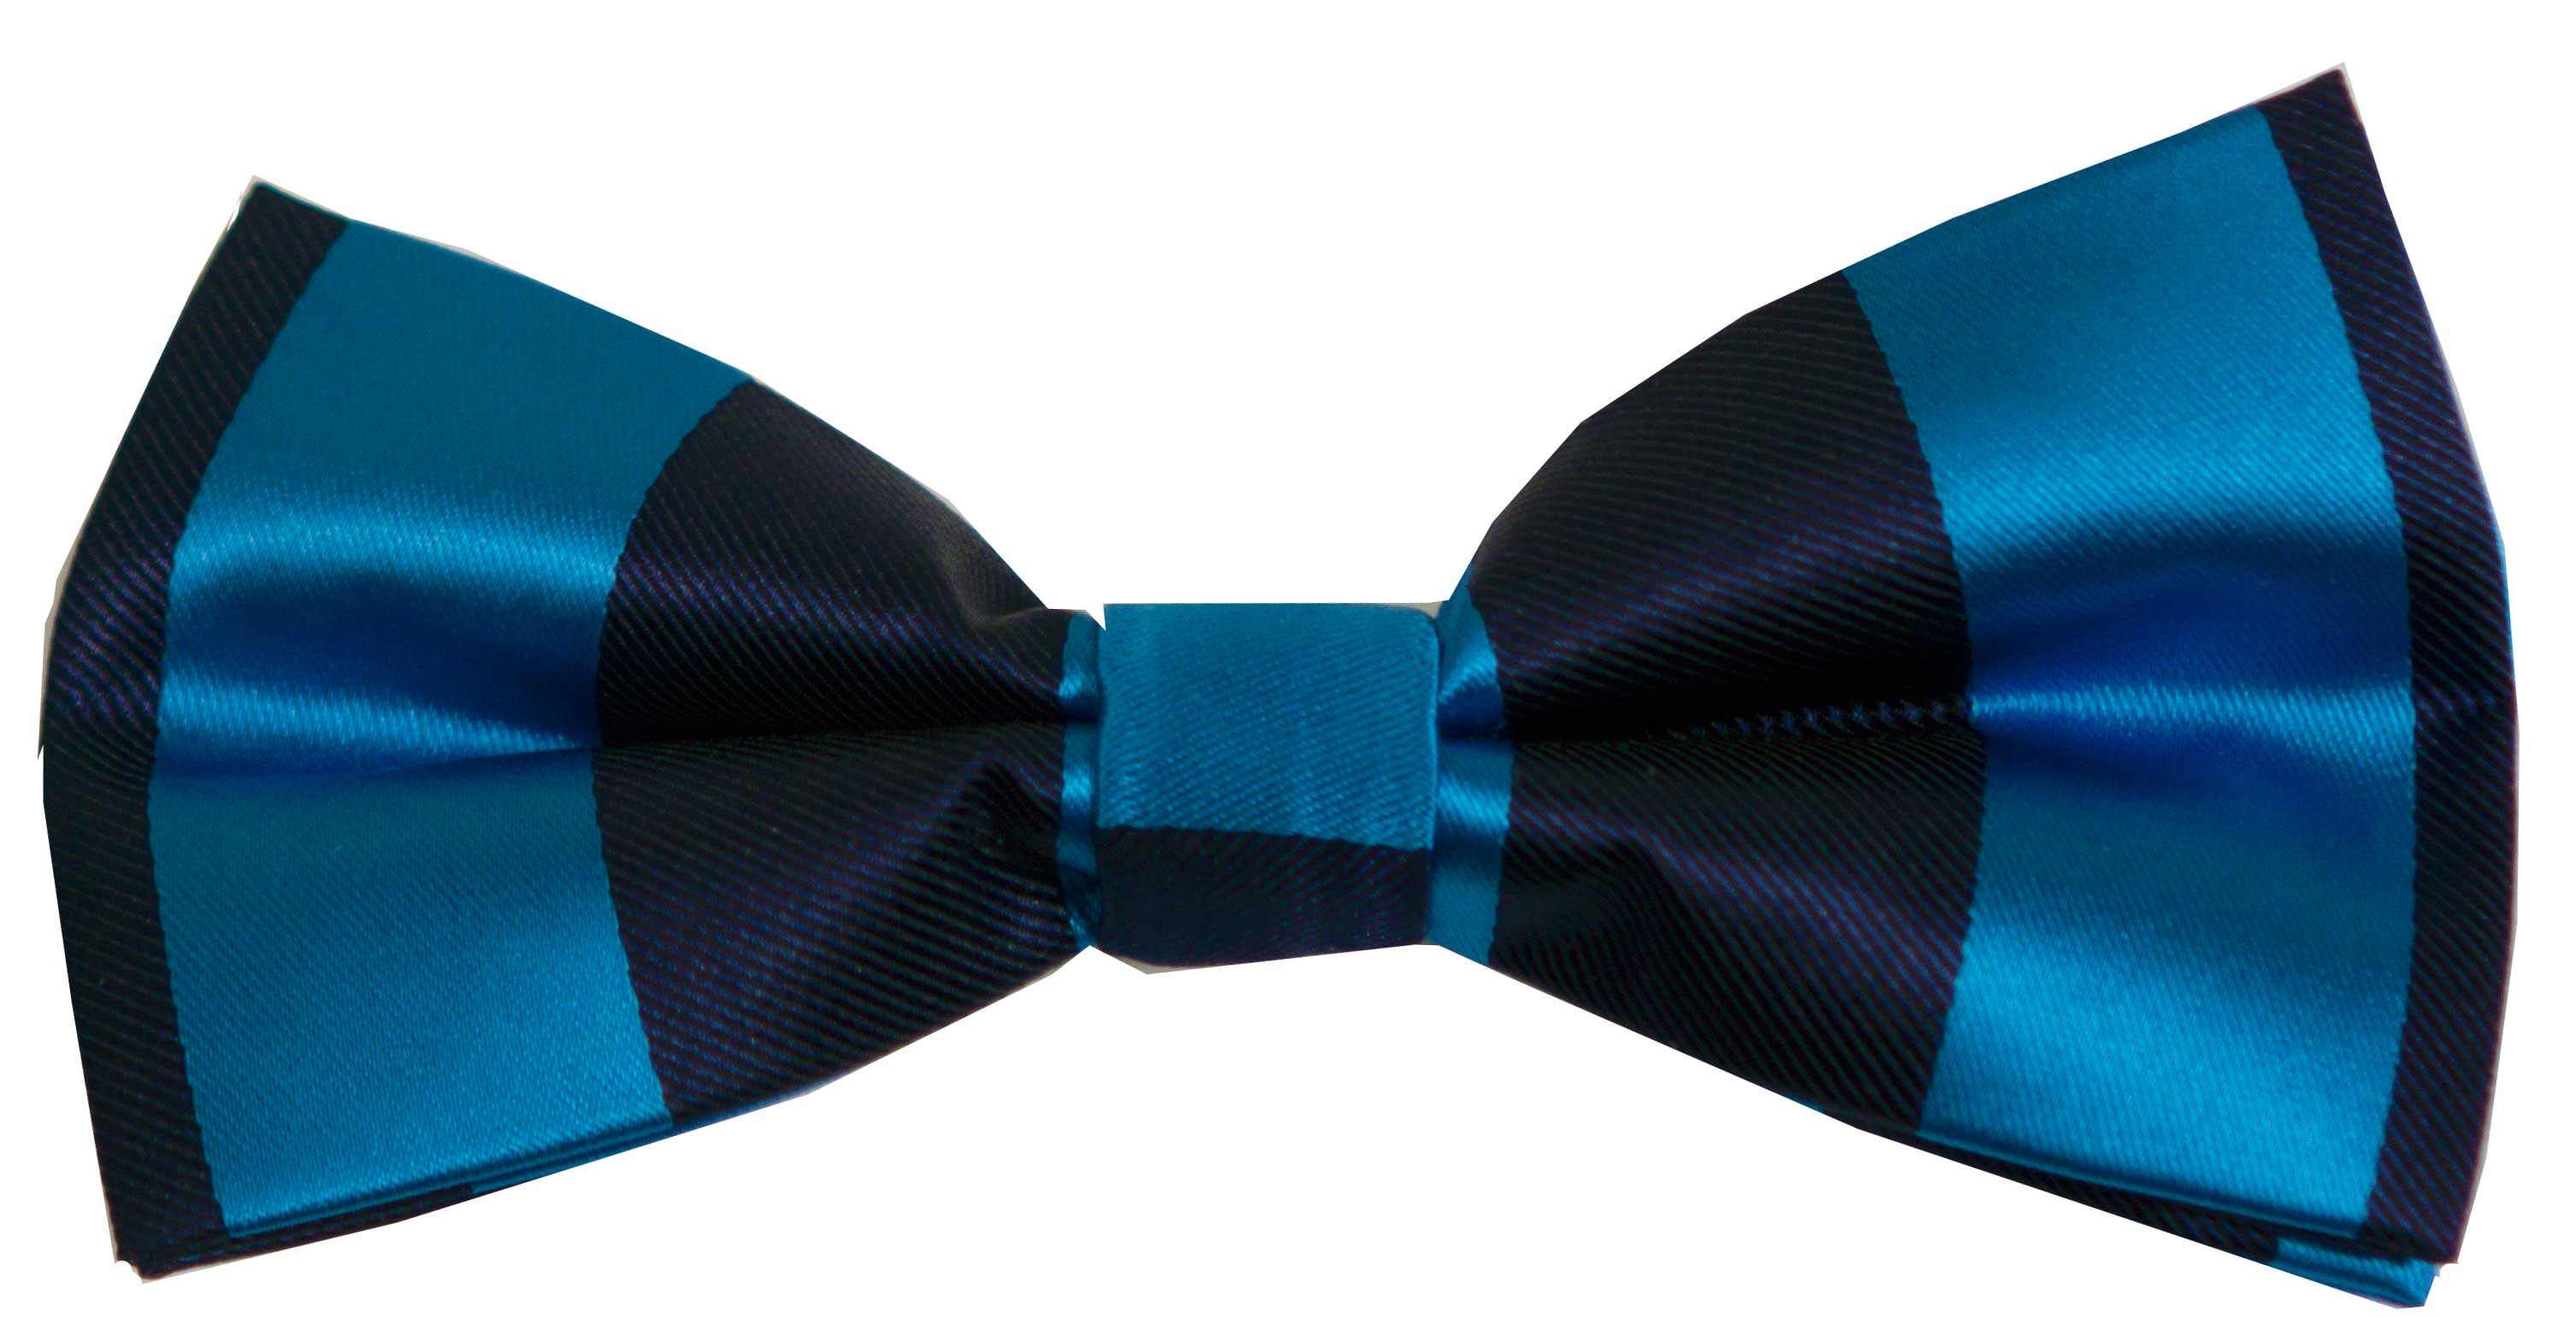 Bow tie (blue and dark blue)